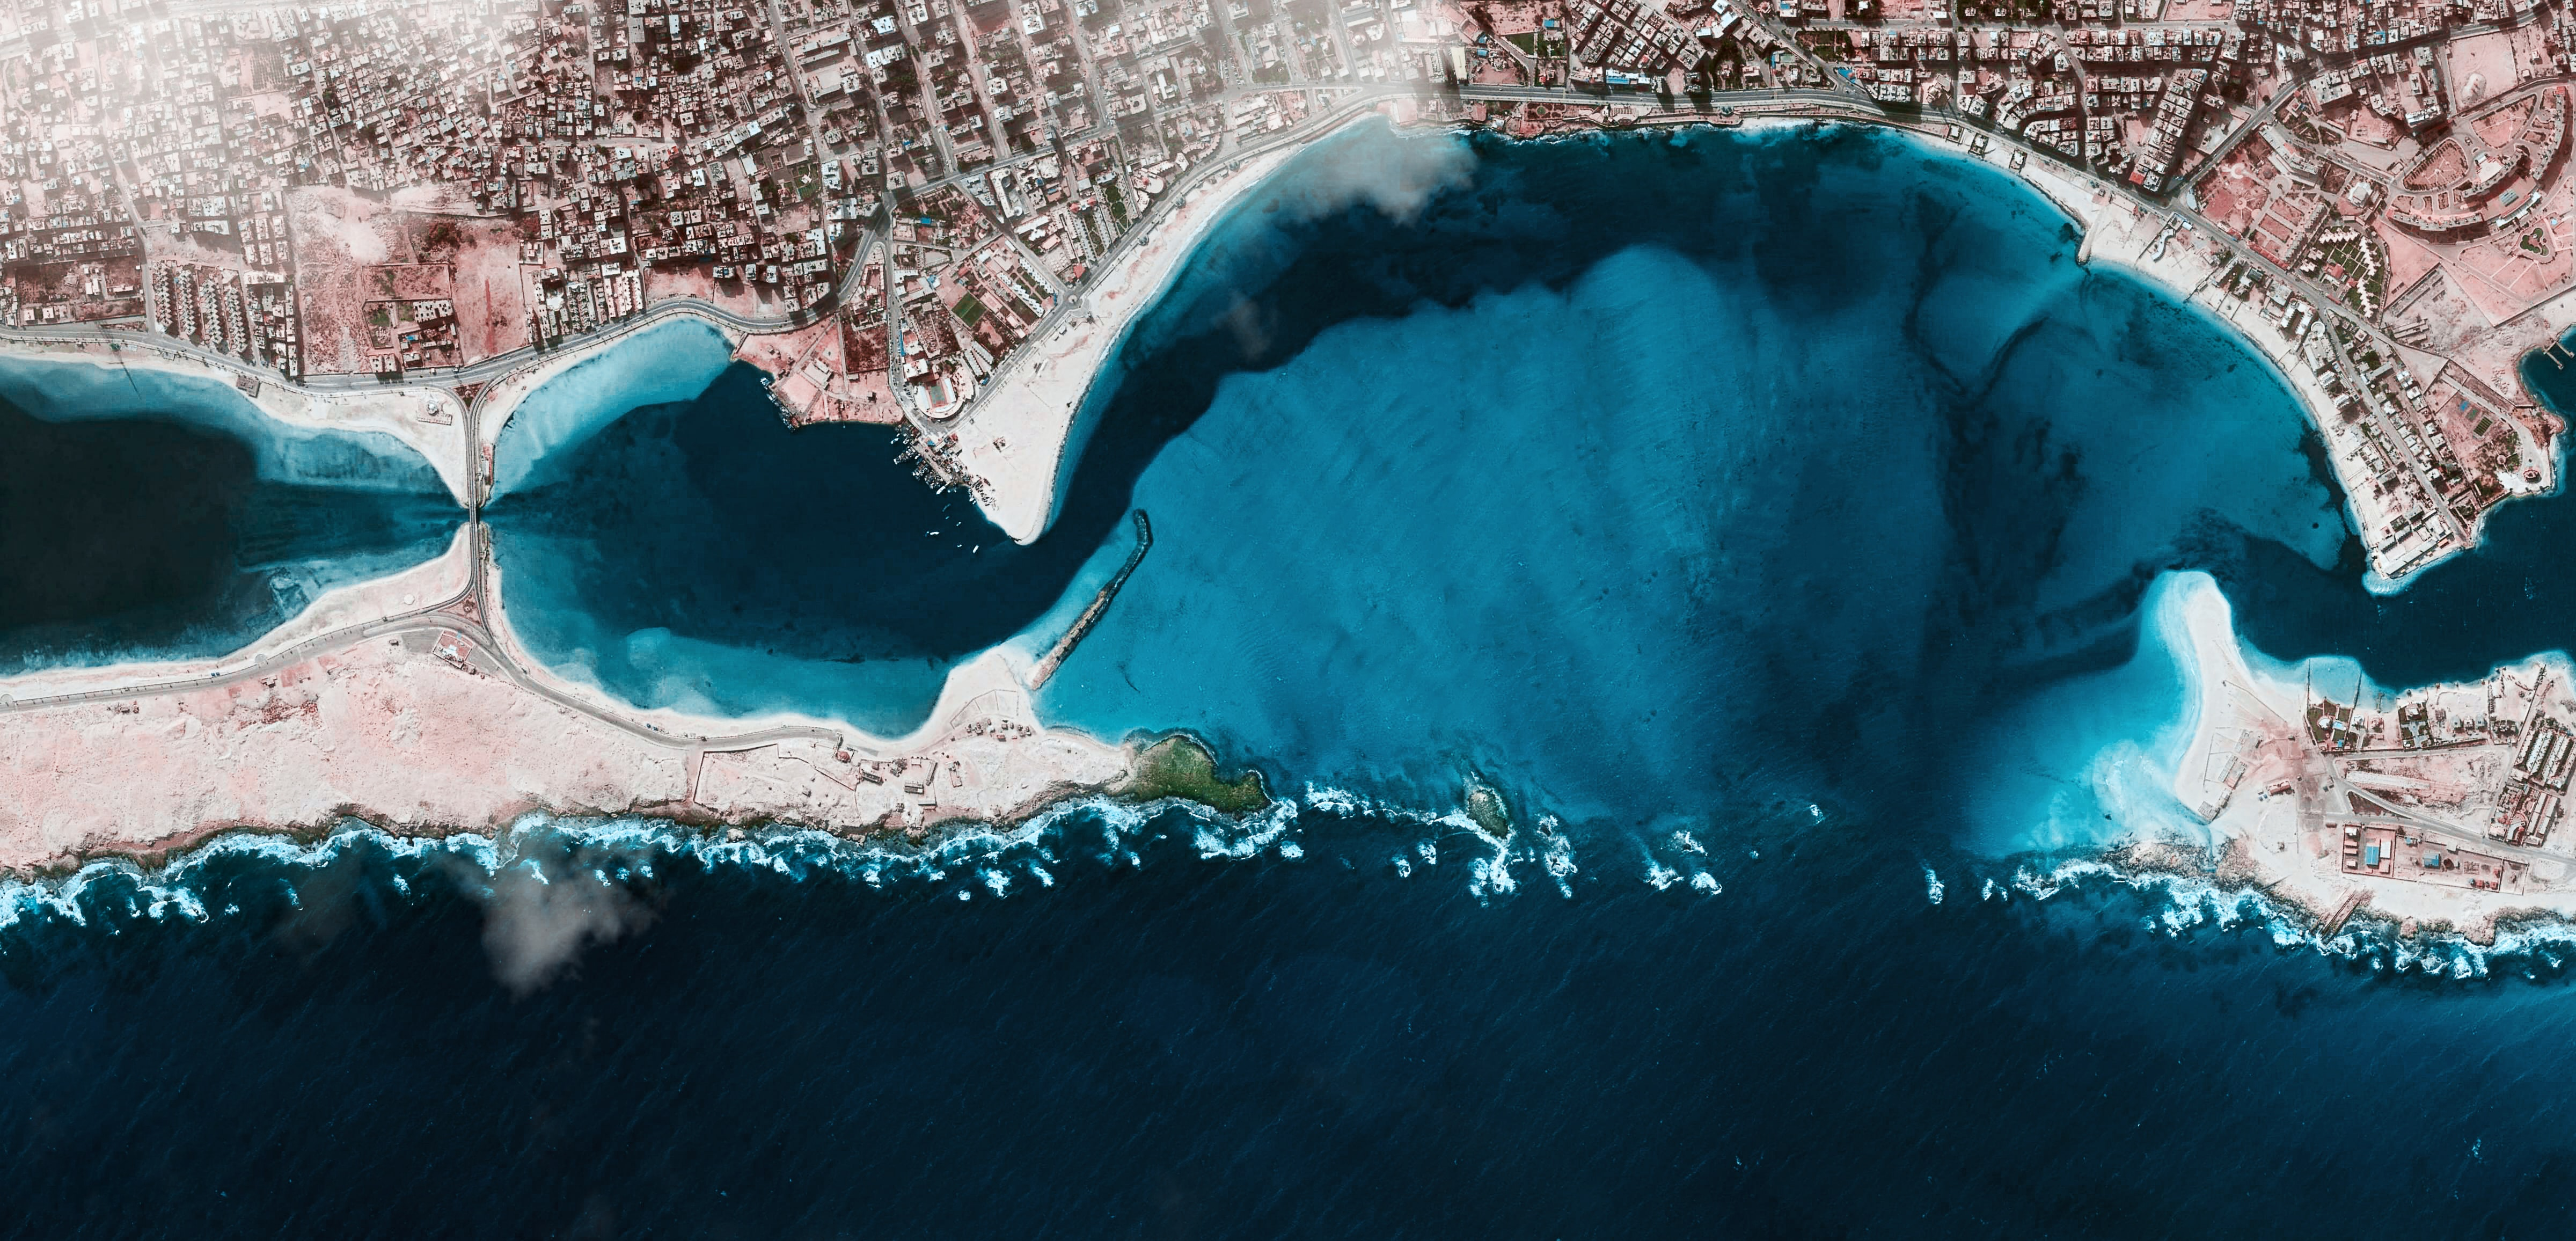 aerial photography of city near body of water